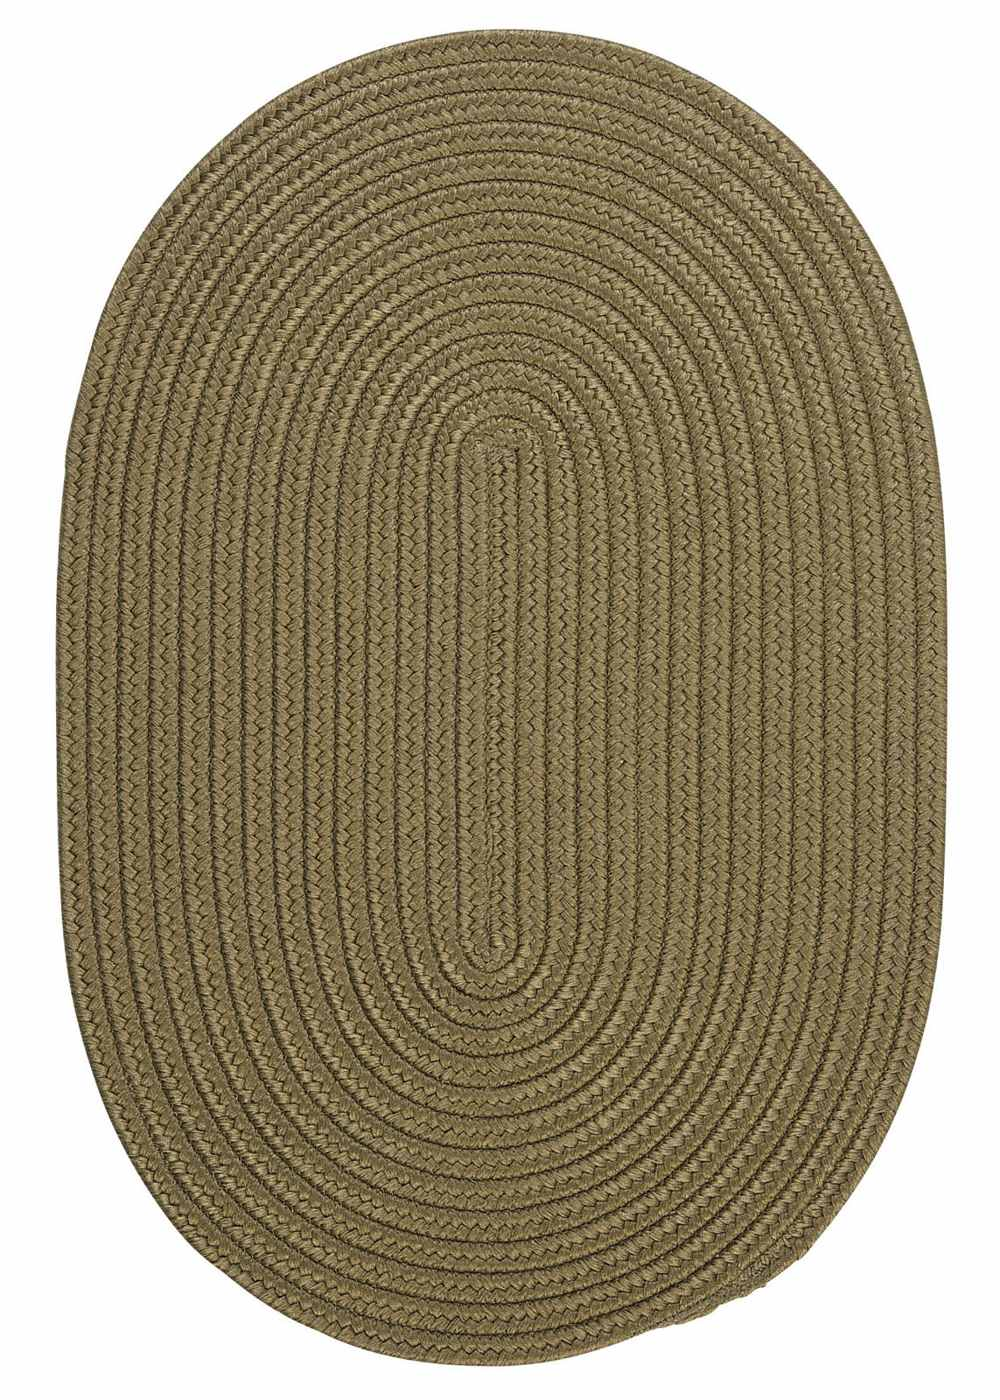 Super Area Rugs 2ft. x 12ft. Oval Indoor/Outdoor Reversible Braided Rug Sherwood Color (2x12) at Sears.com